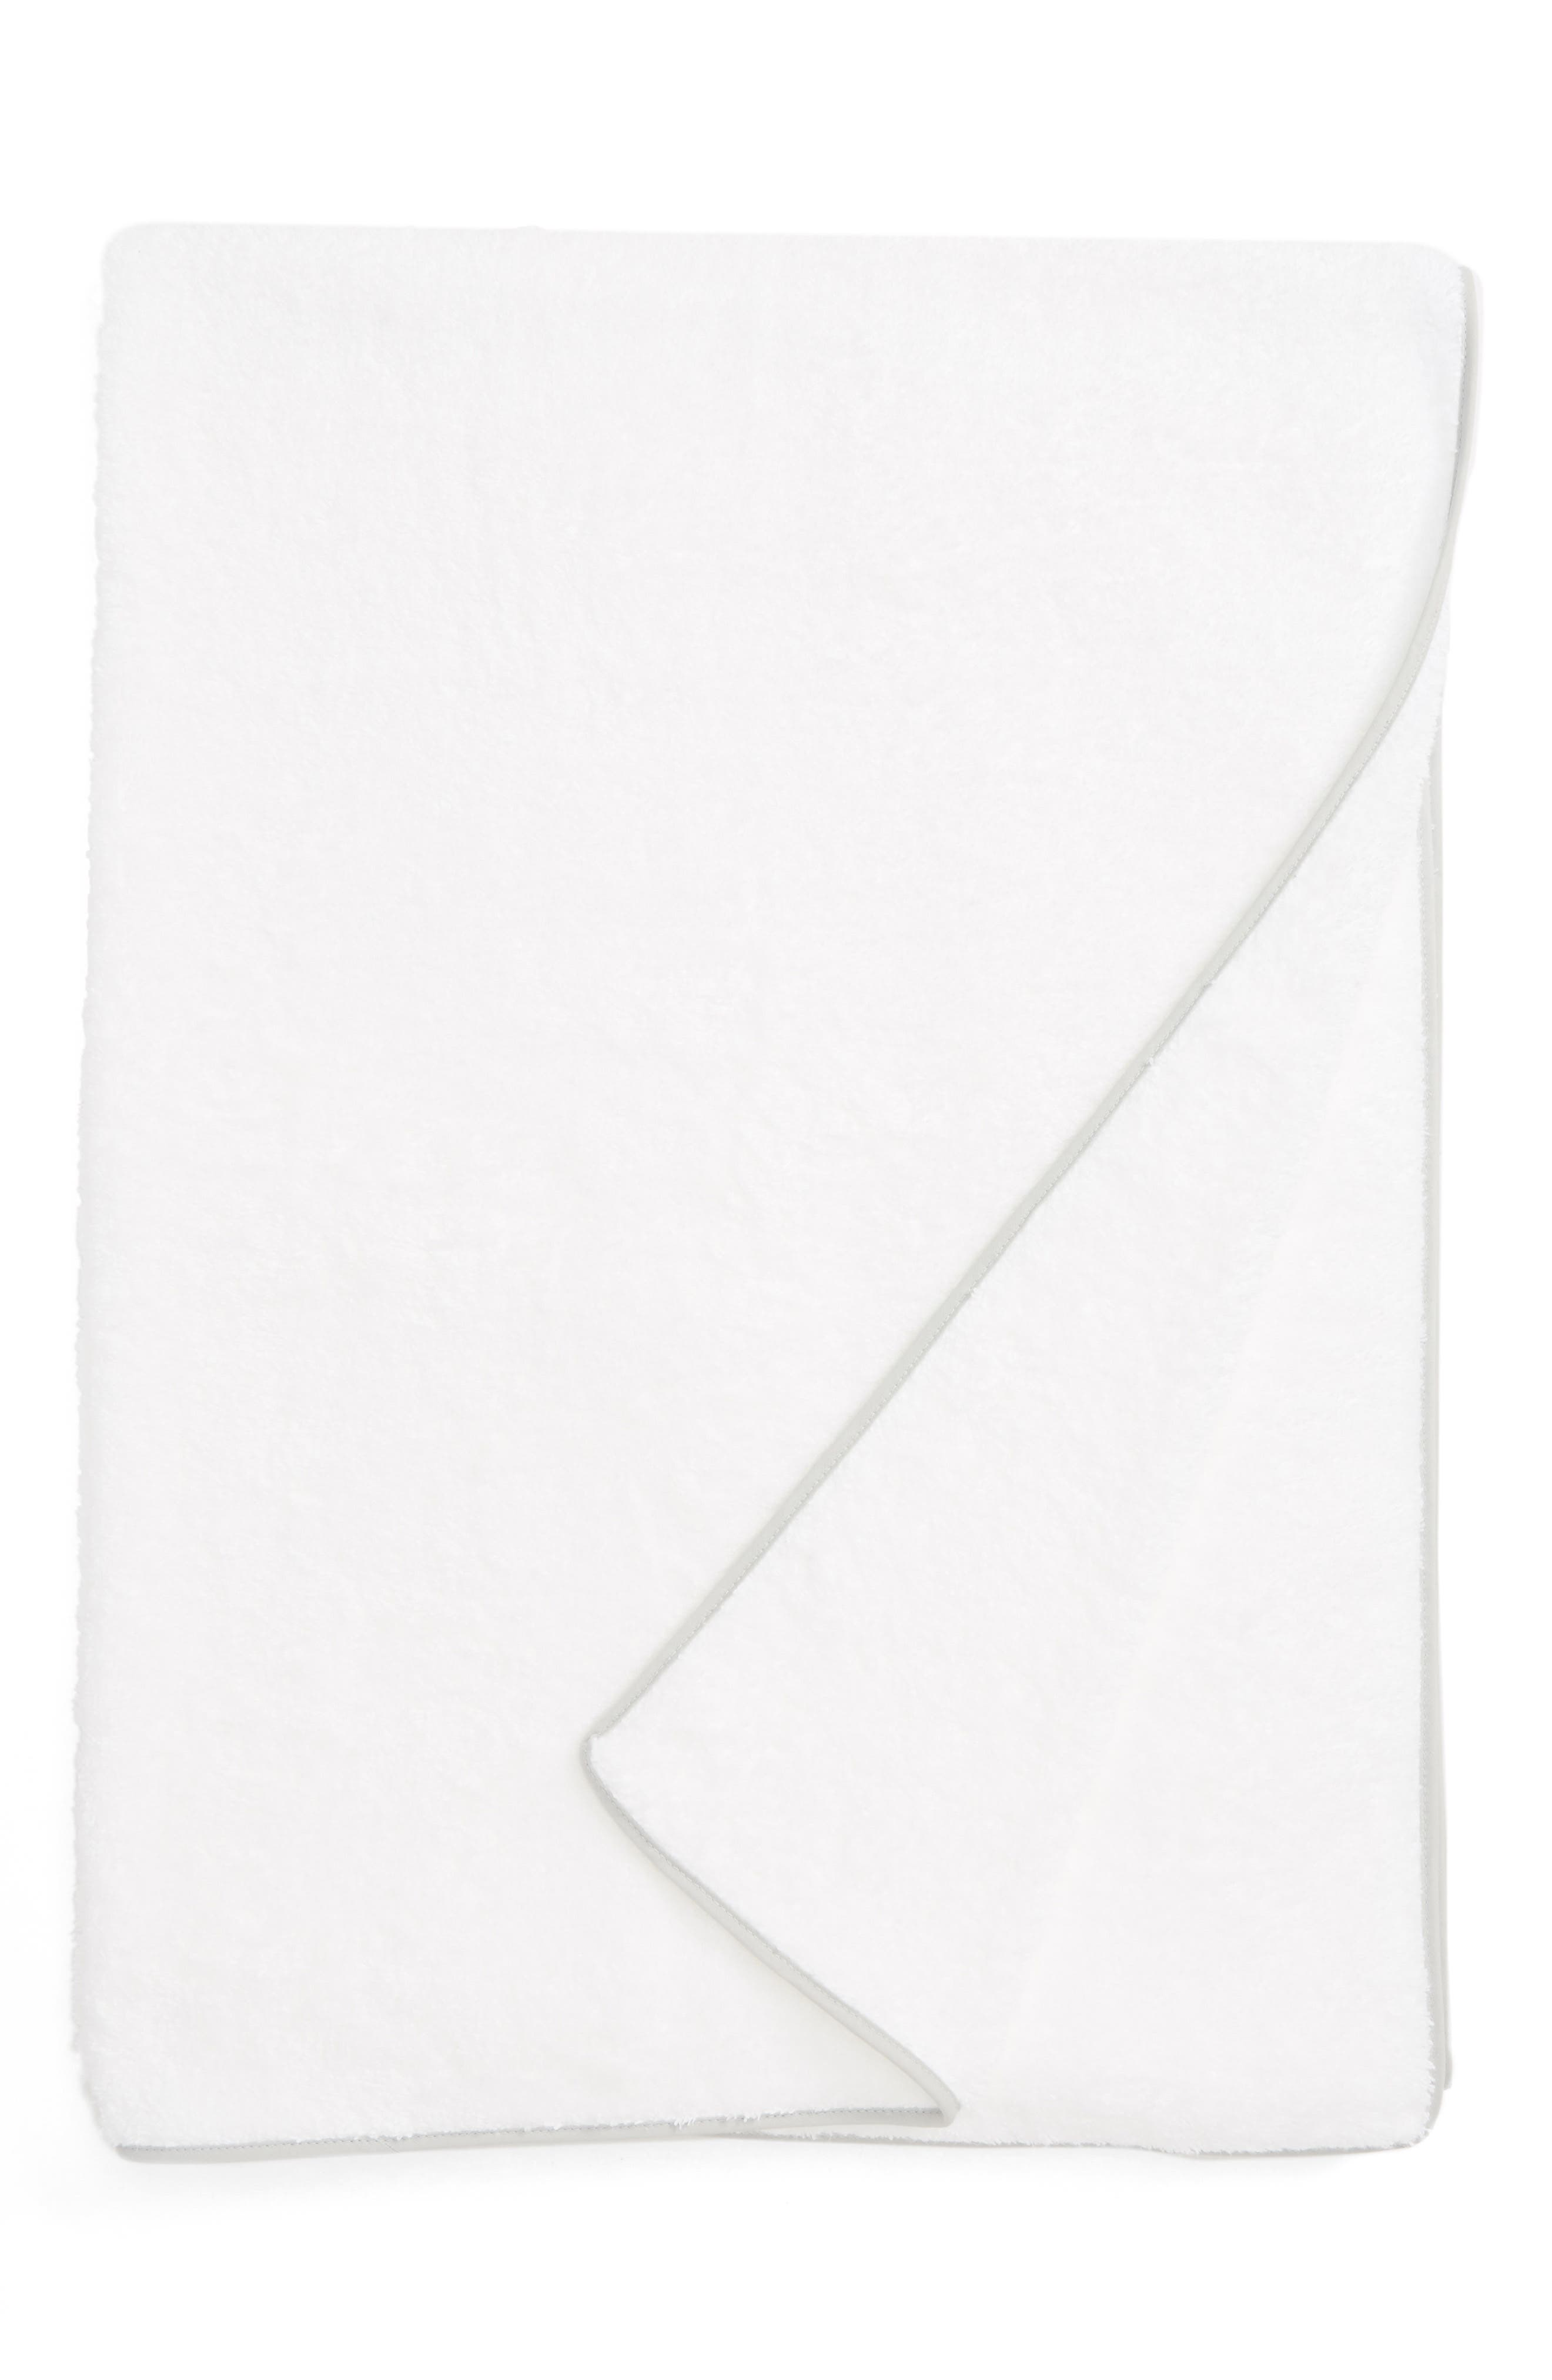 Cairo Bath Sheet,                             Main thumbnail 1, color,                             040